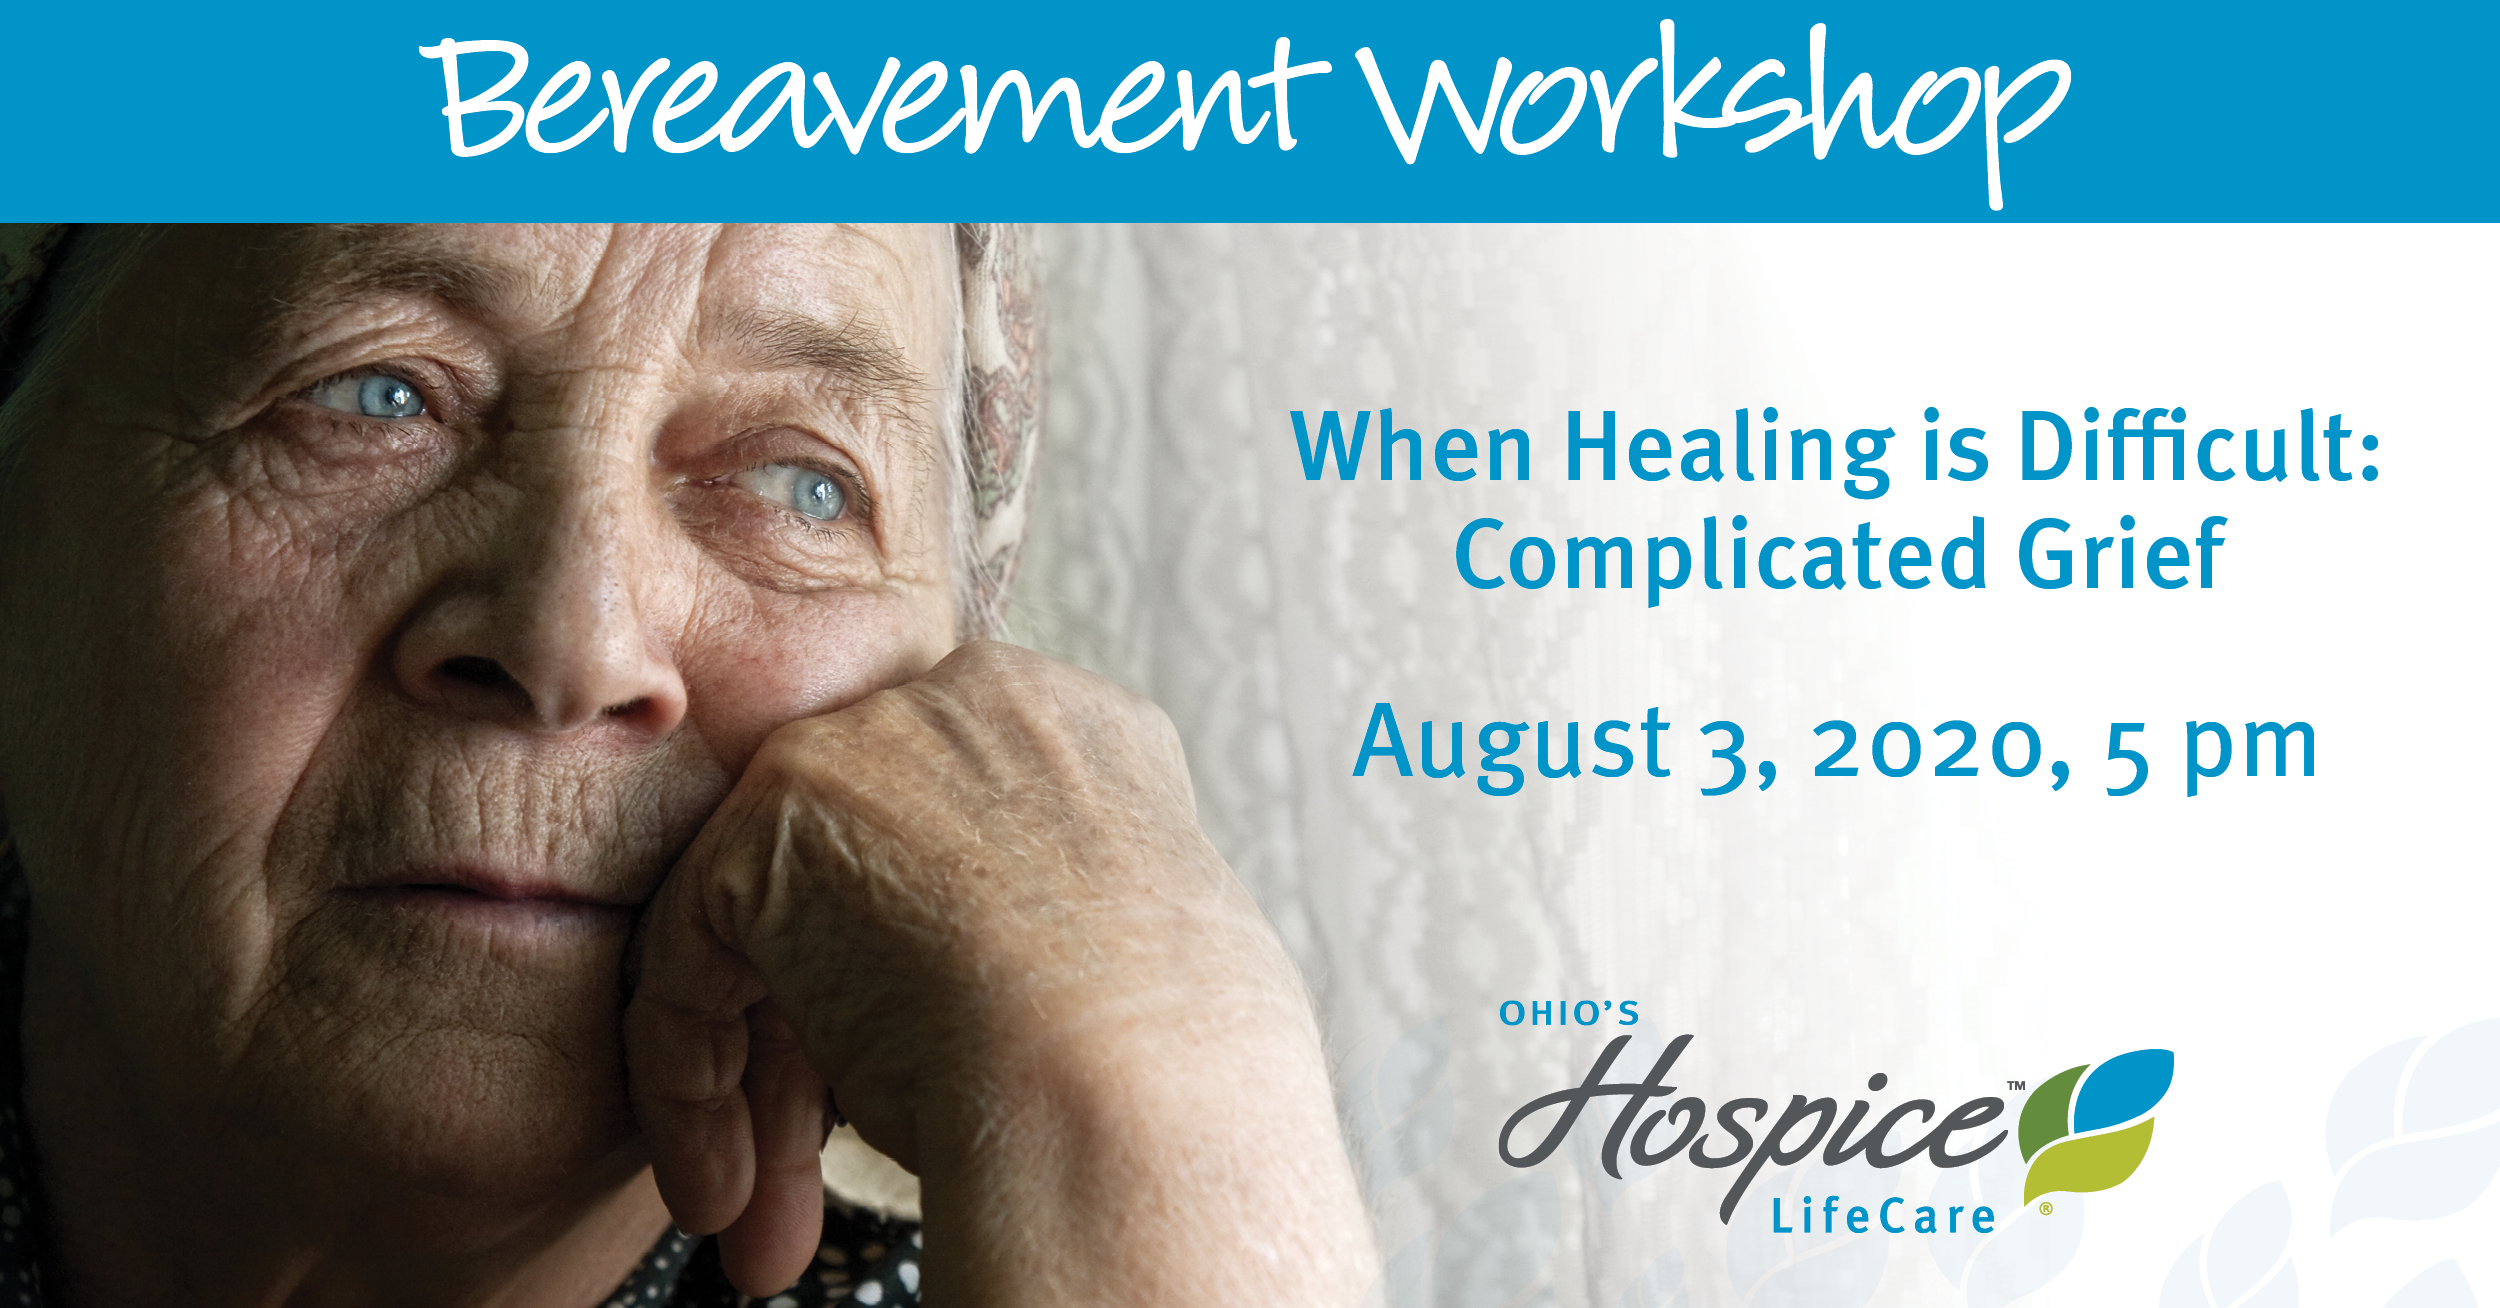 Bereavement Workshop - When Healing Is Difficult: Complicated Grief